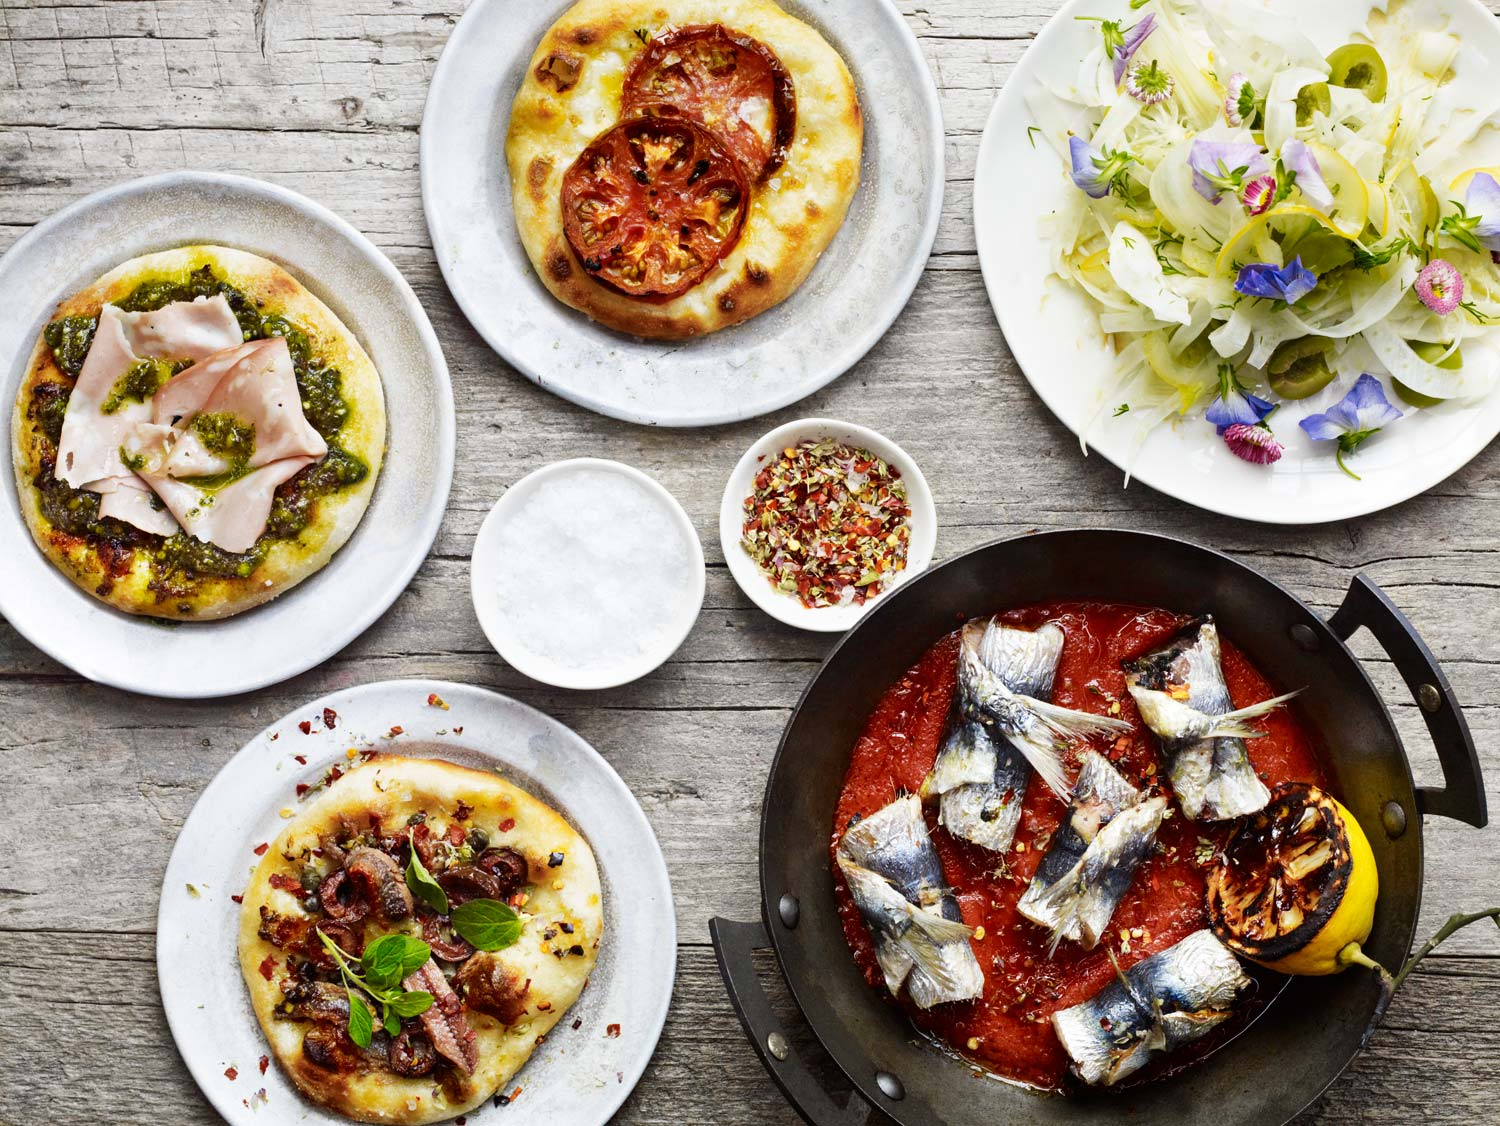 Petersham Nurseries Covent Garden Opens its Restaurants, Bar and Courtyard this April